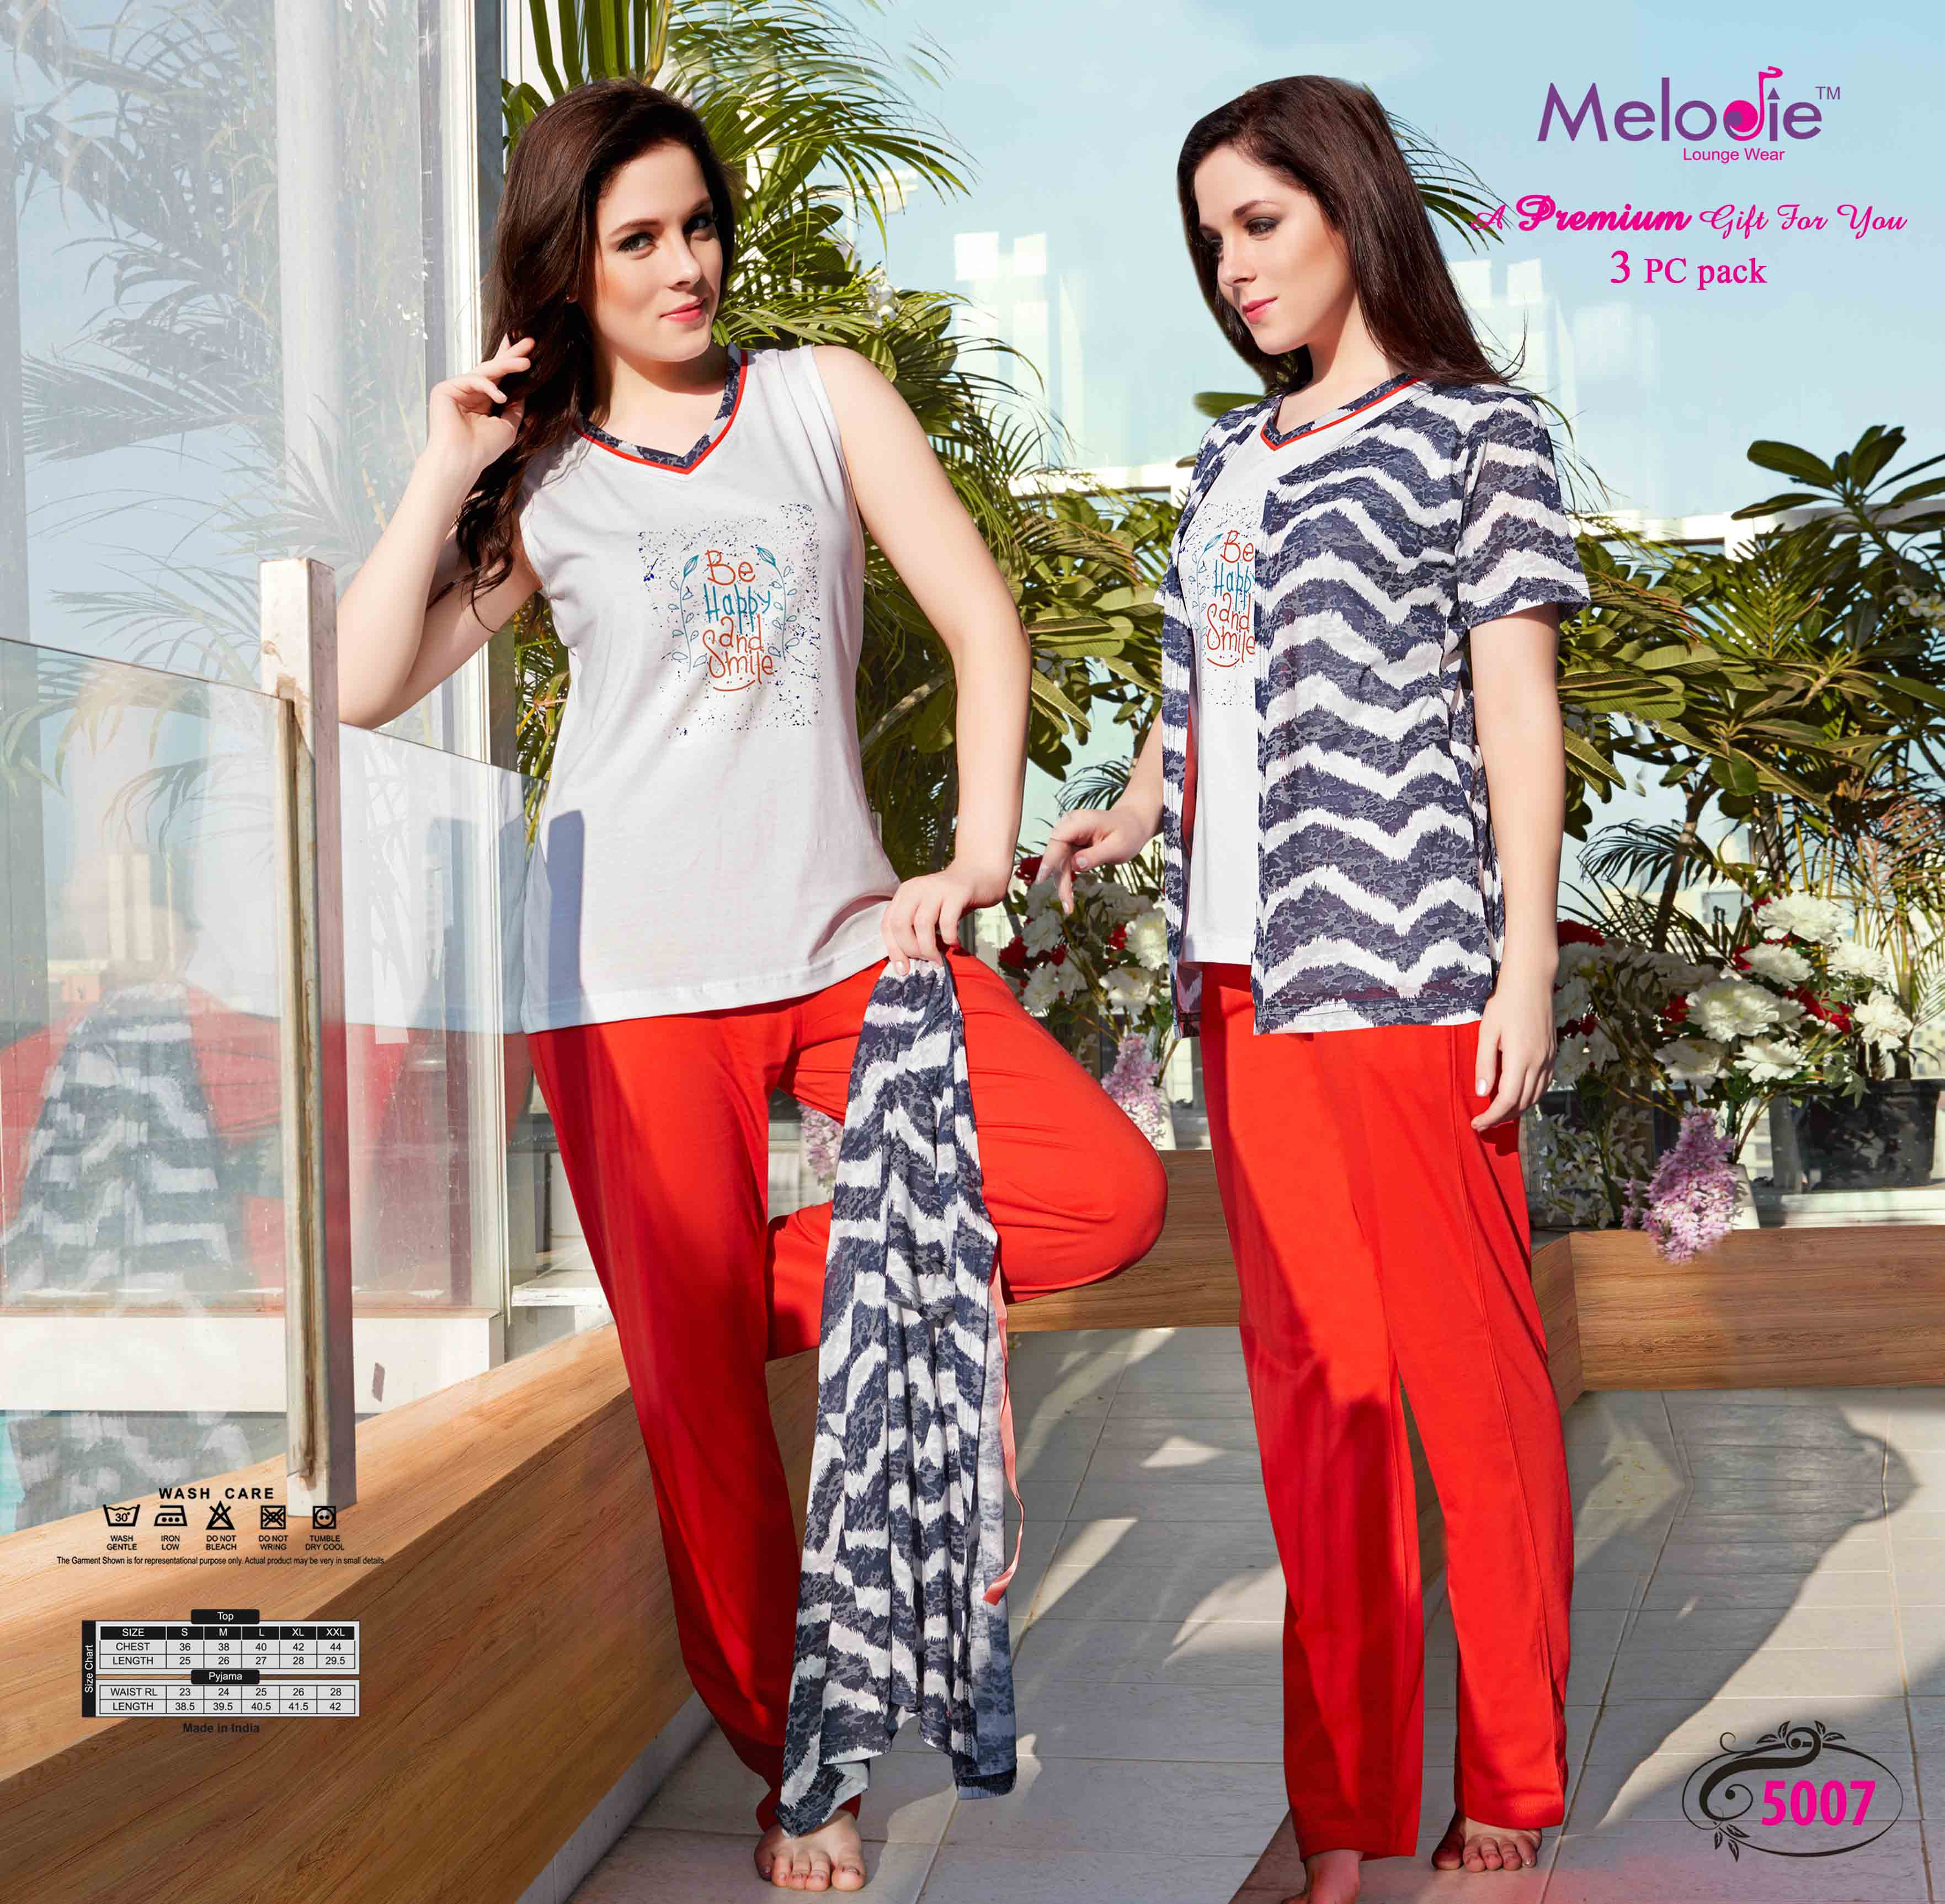 Melodie Loungwear Sets are a Value For Money!